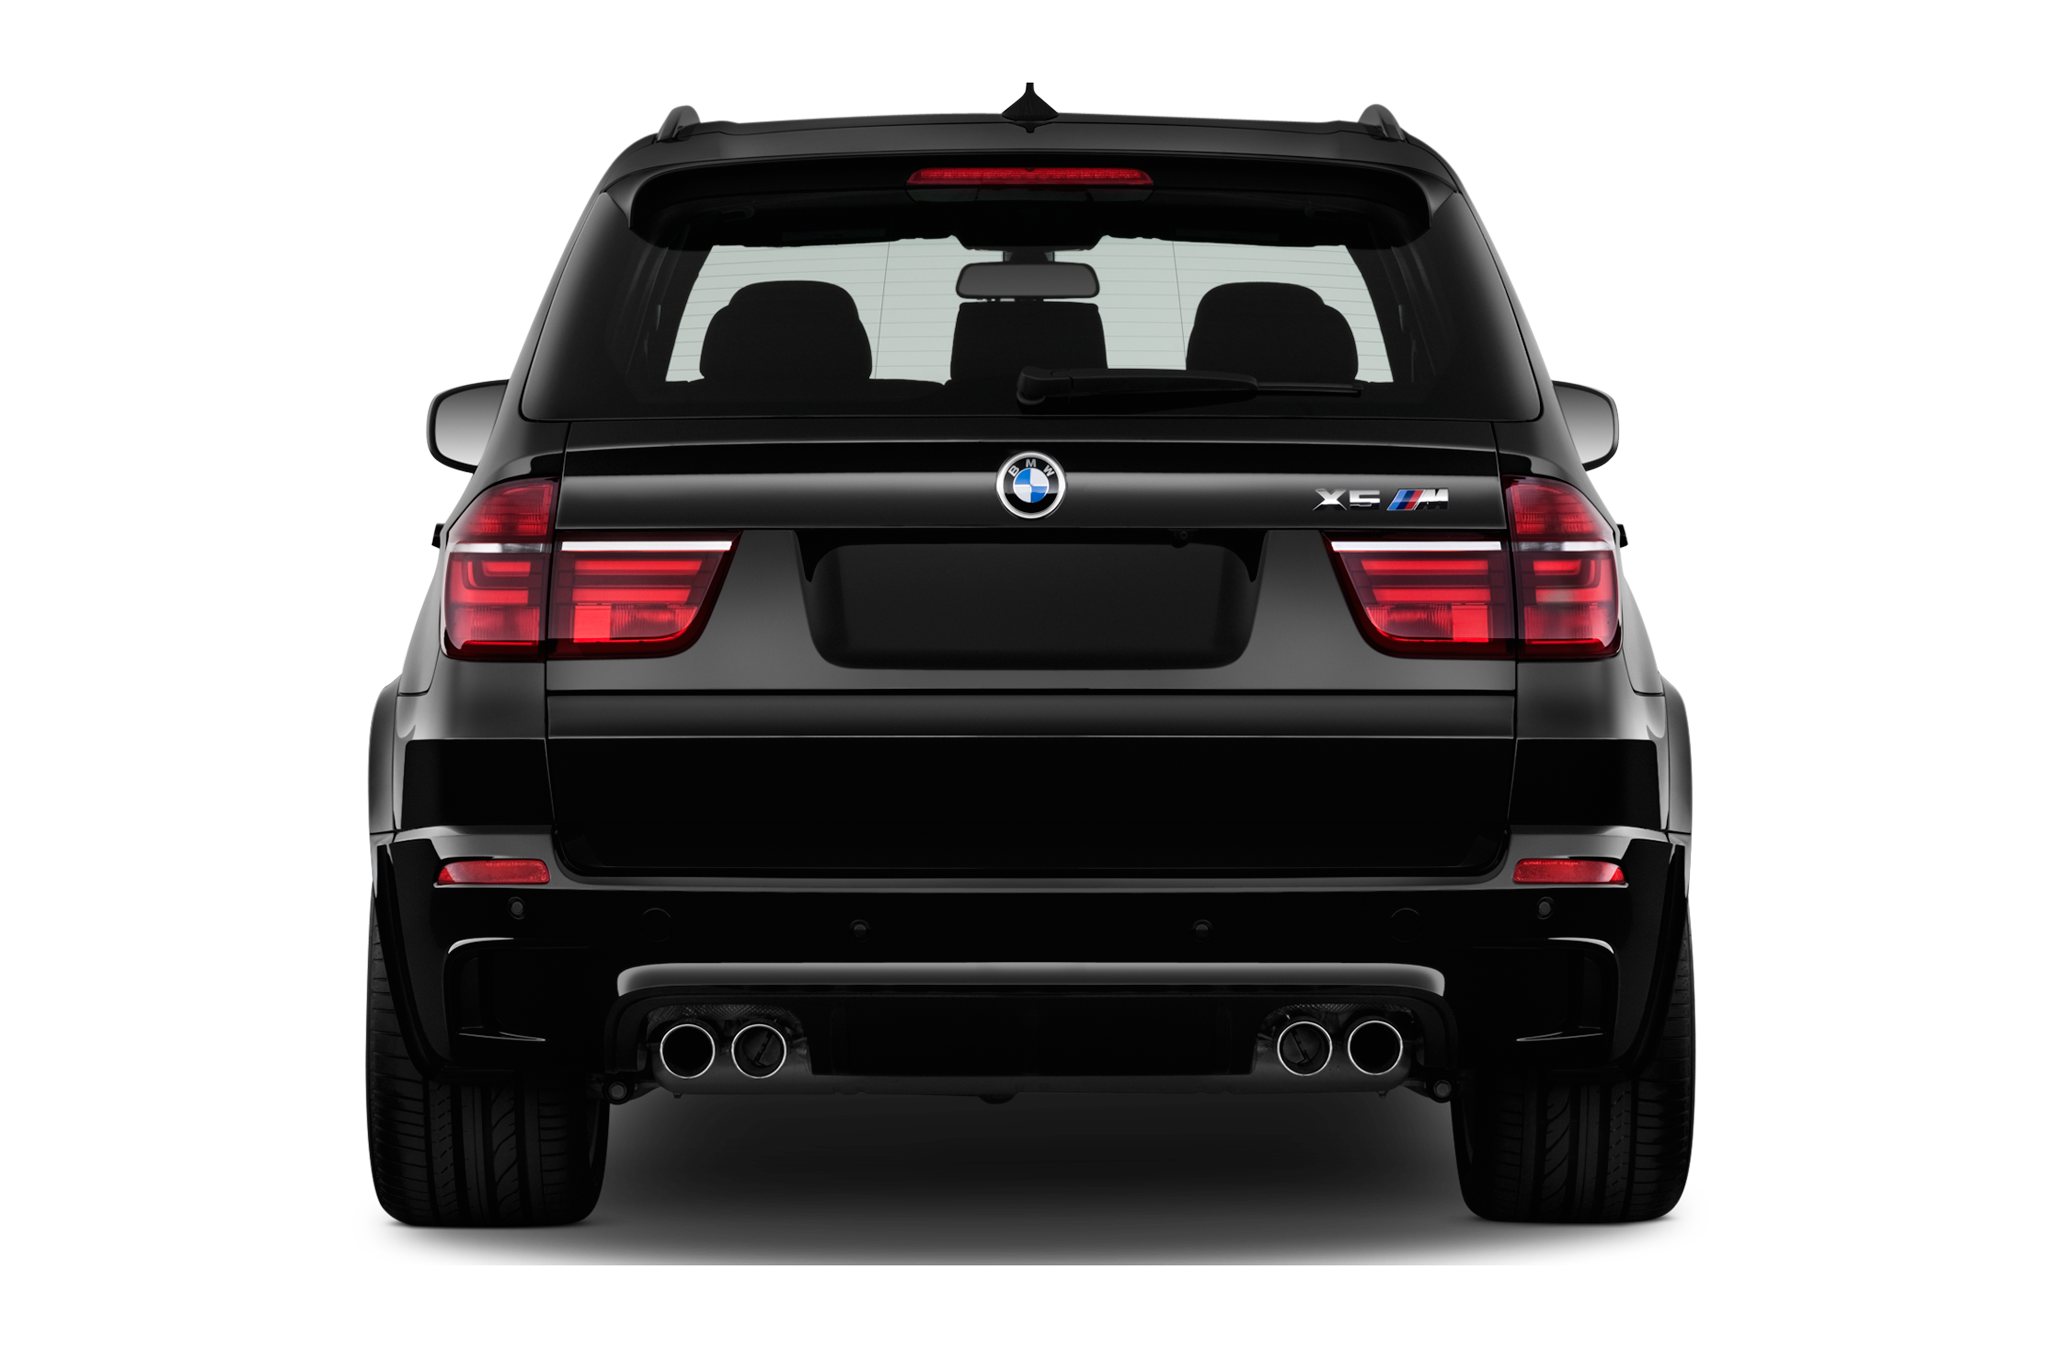 2010 bmw x5 xdrive35d bmw luxury crossover suv review. Black Bedroom Furniture Sets. Home Design Ideas